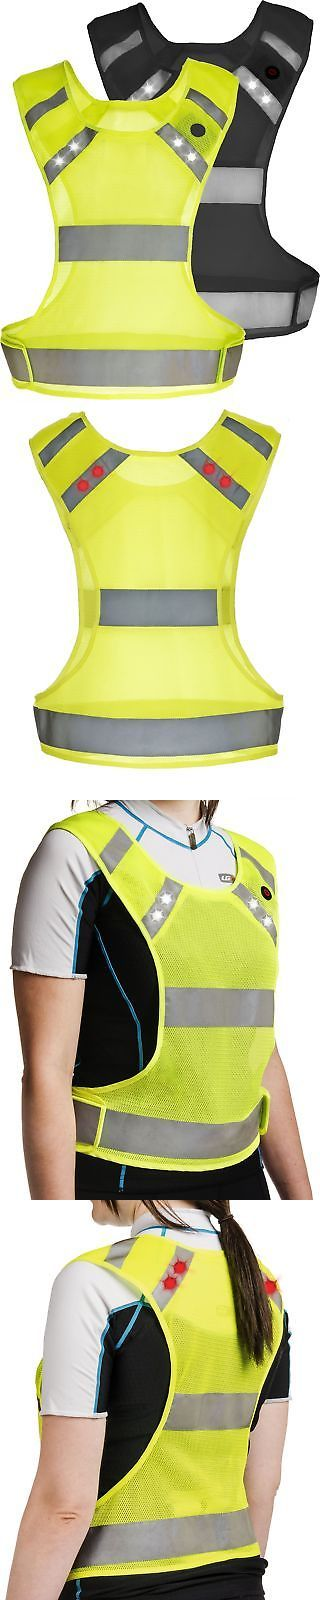 Safety and Reflective Gear 158951: Reflective Running Vest With Led Lights - Night Safety Gear For Men And Wom... New -> BUY IT NOW ONLY: $39.19 on eBay!